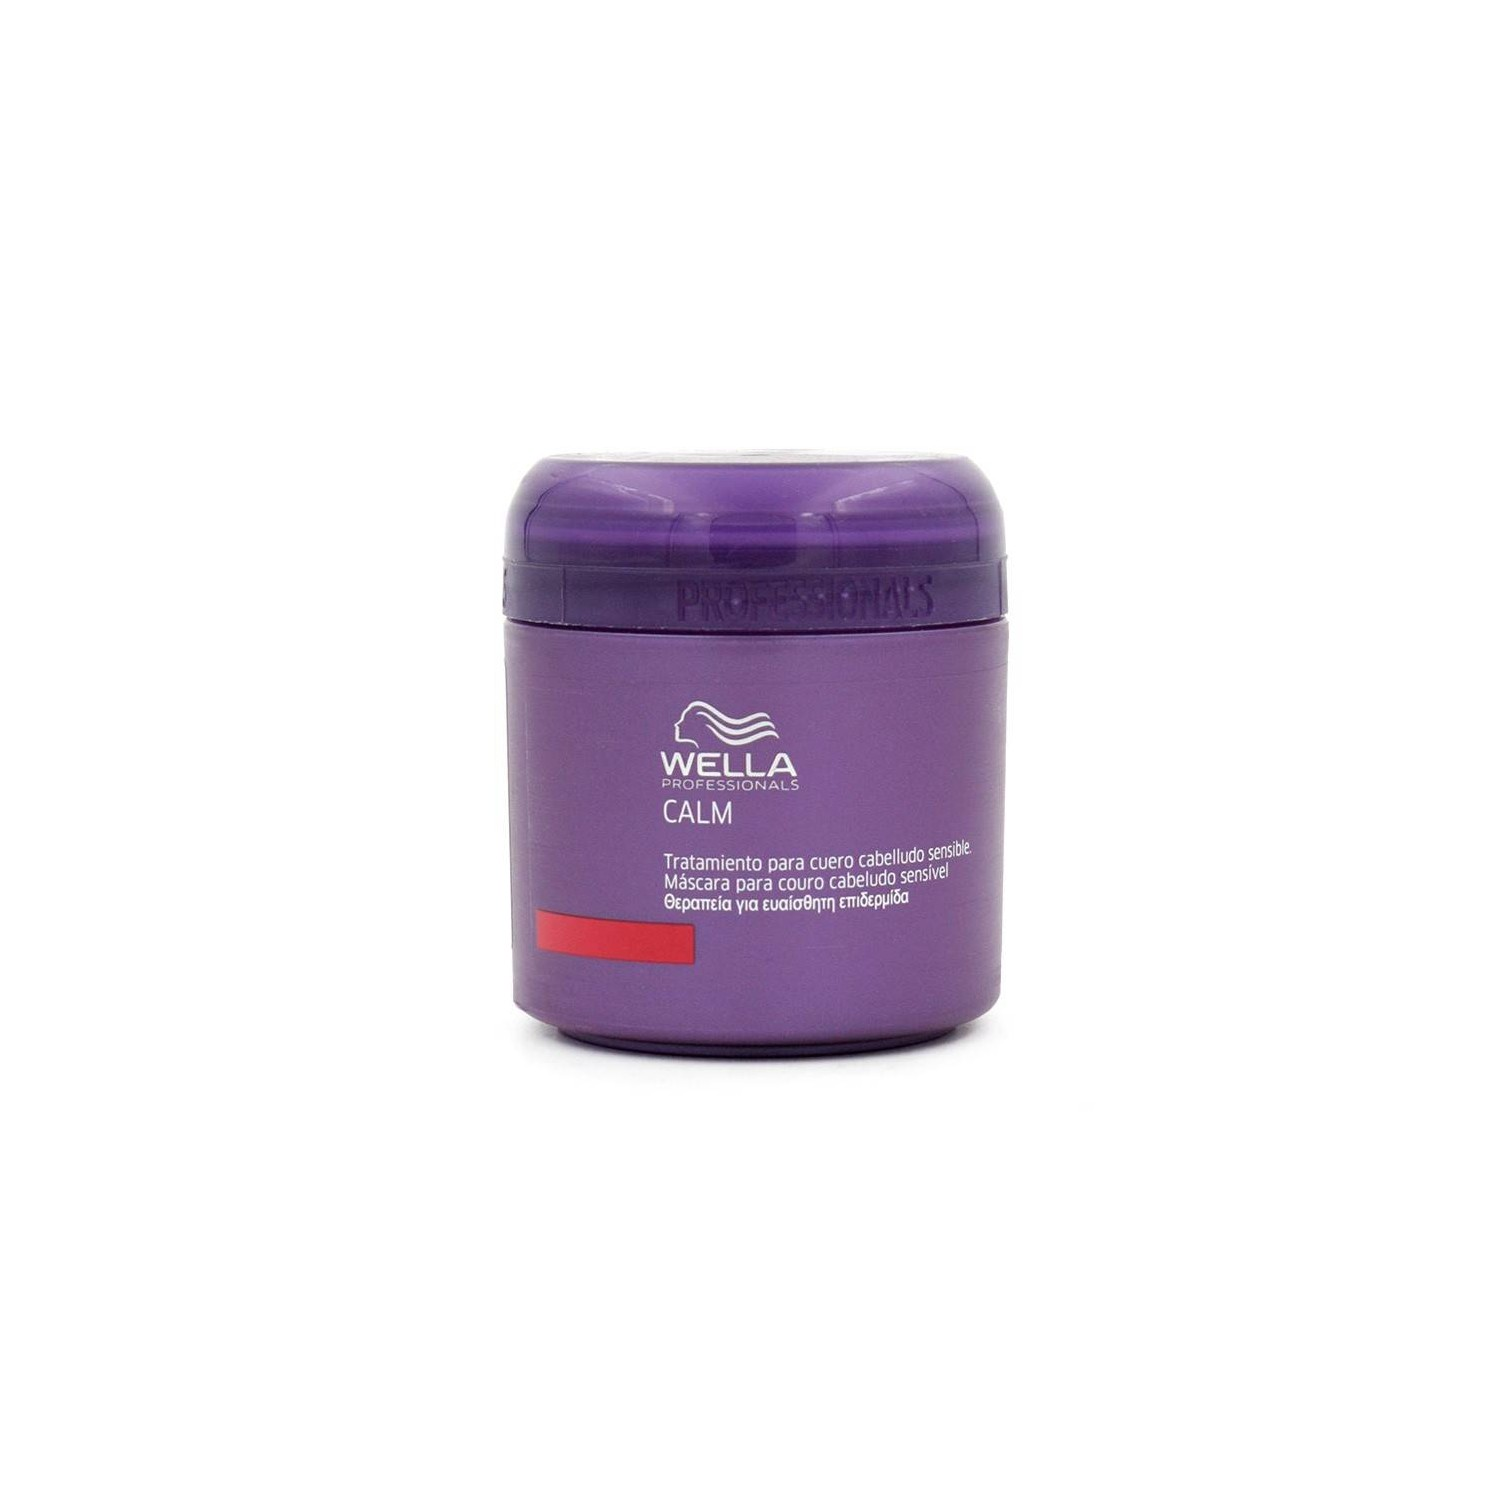 Wella Balance Mask Calm 150 Ml